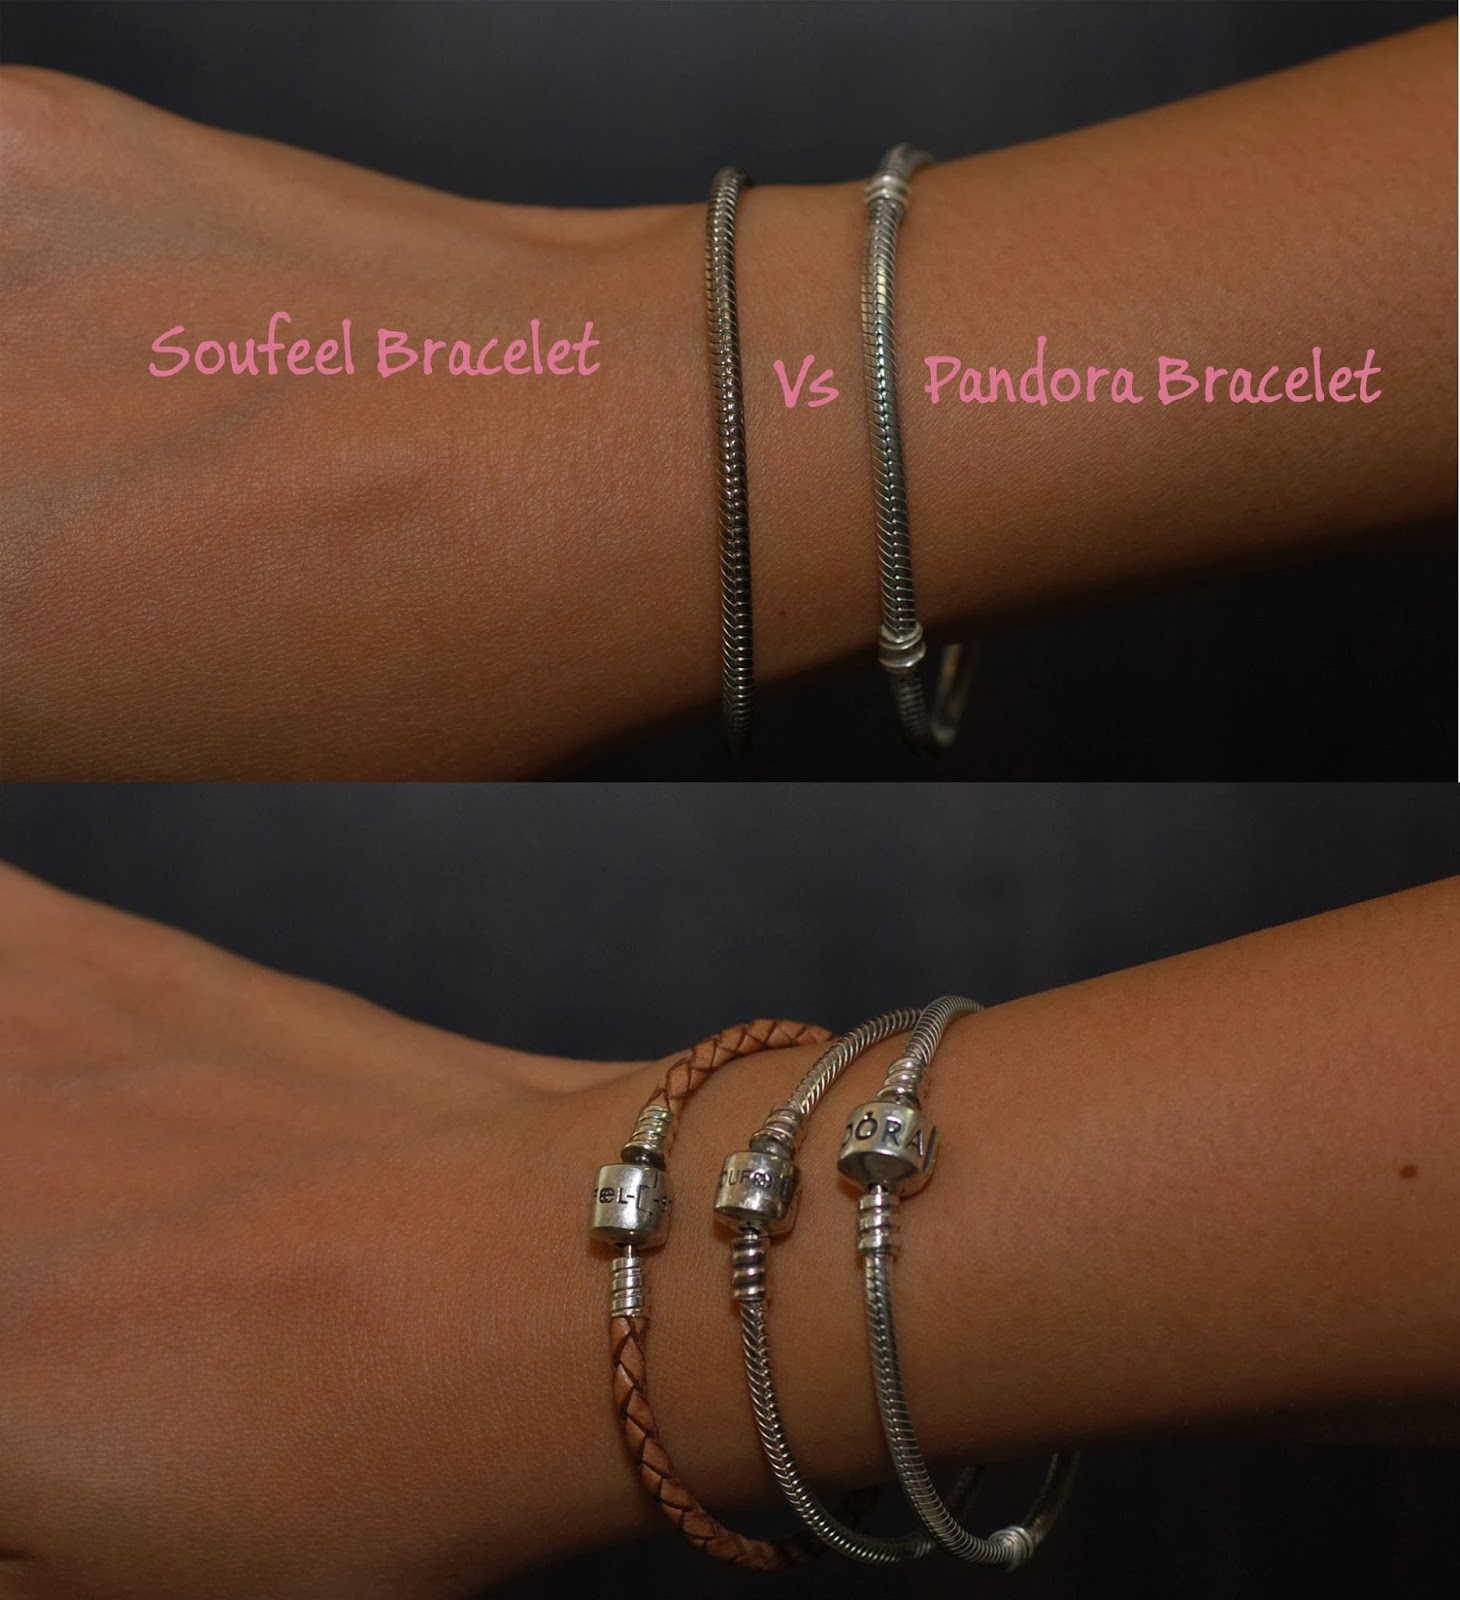 How To Clean Pandora Bracelet And Charms: NEWBIE On Charm Bracelet (Same But Different): Updated